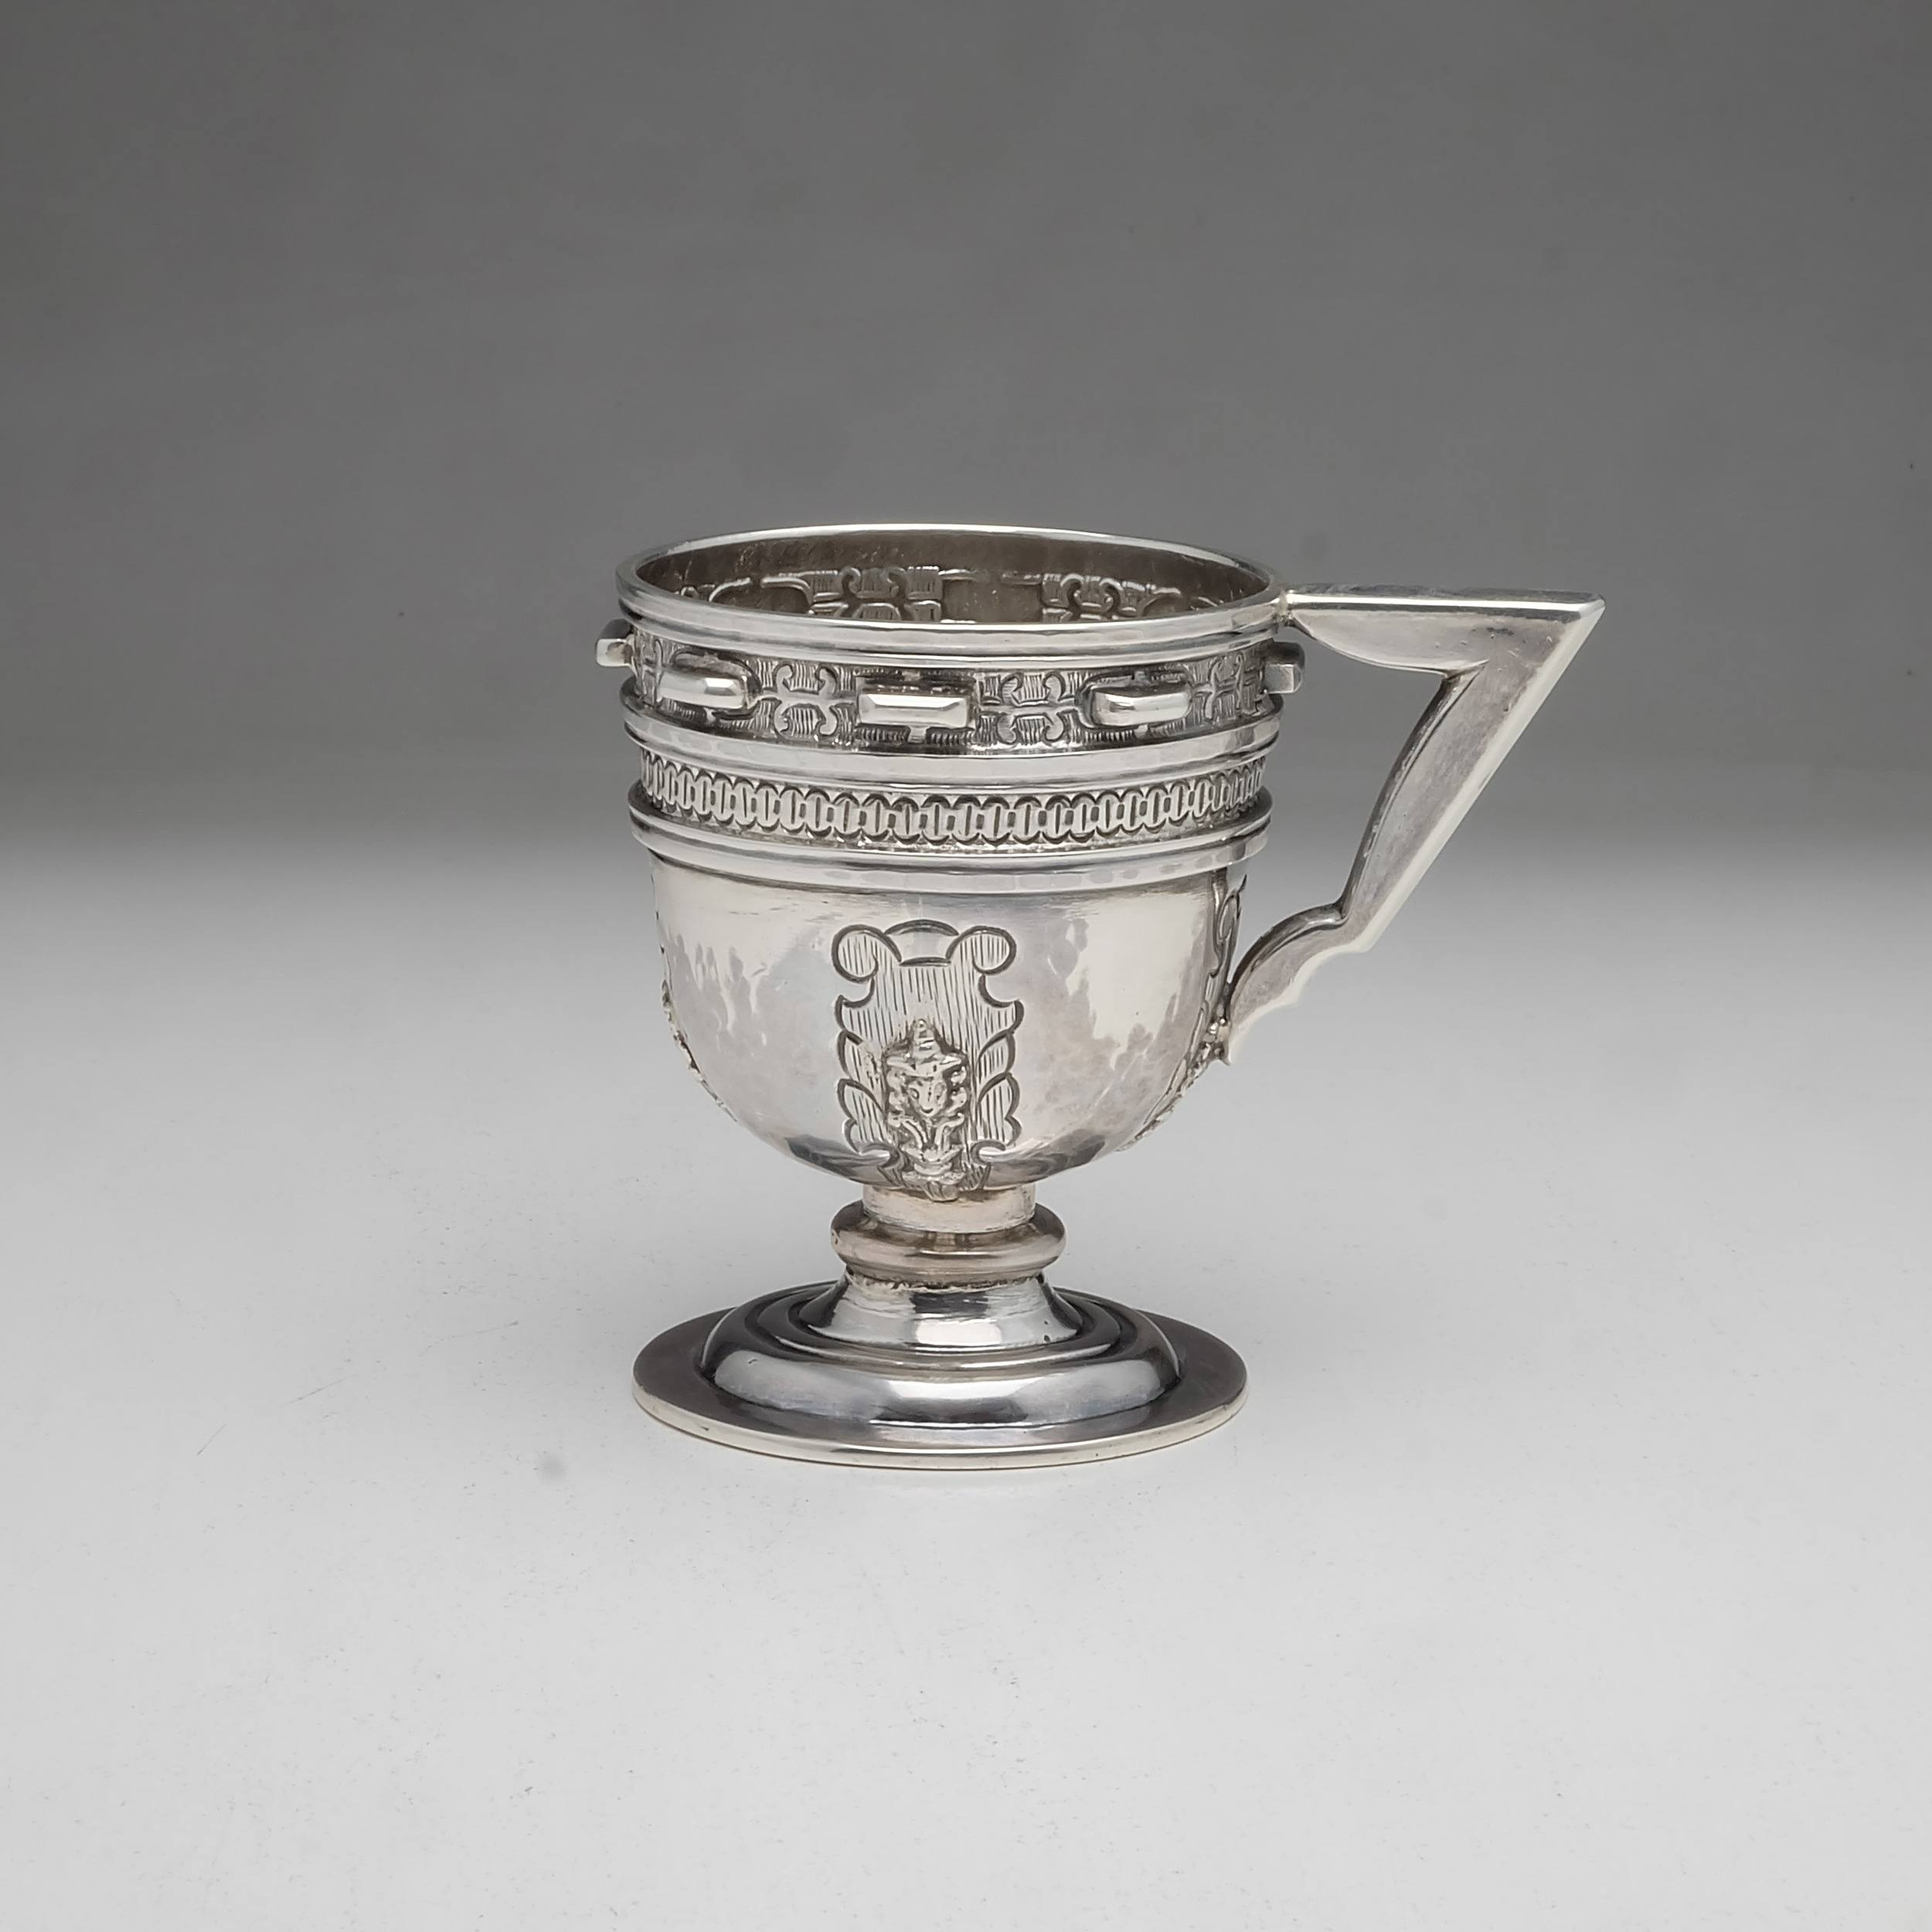 'Spanish Silver Handled Mug in the Renaissance Style 217g'